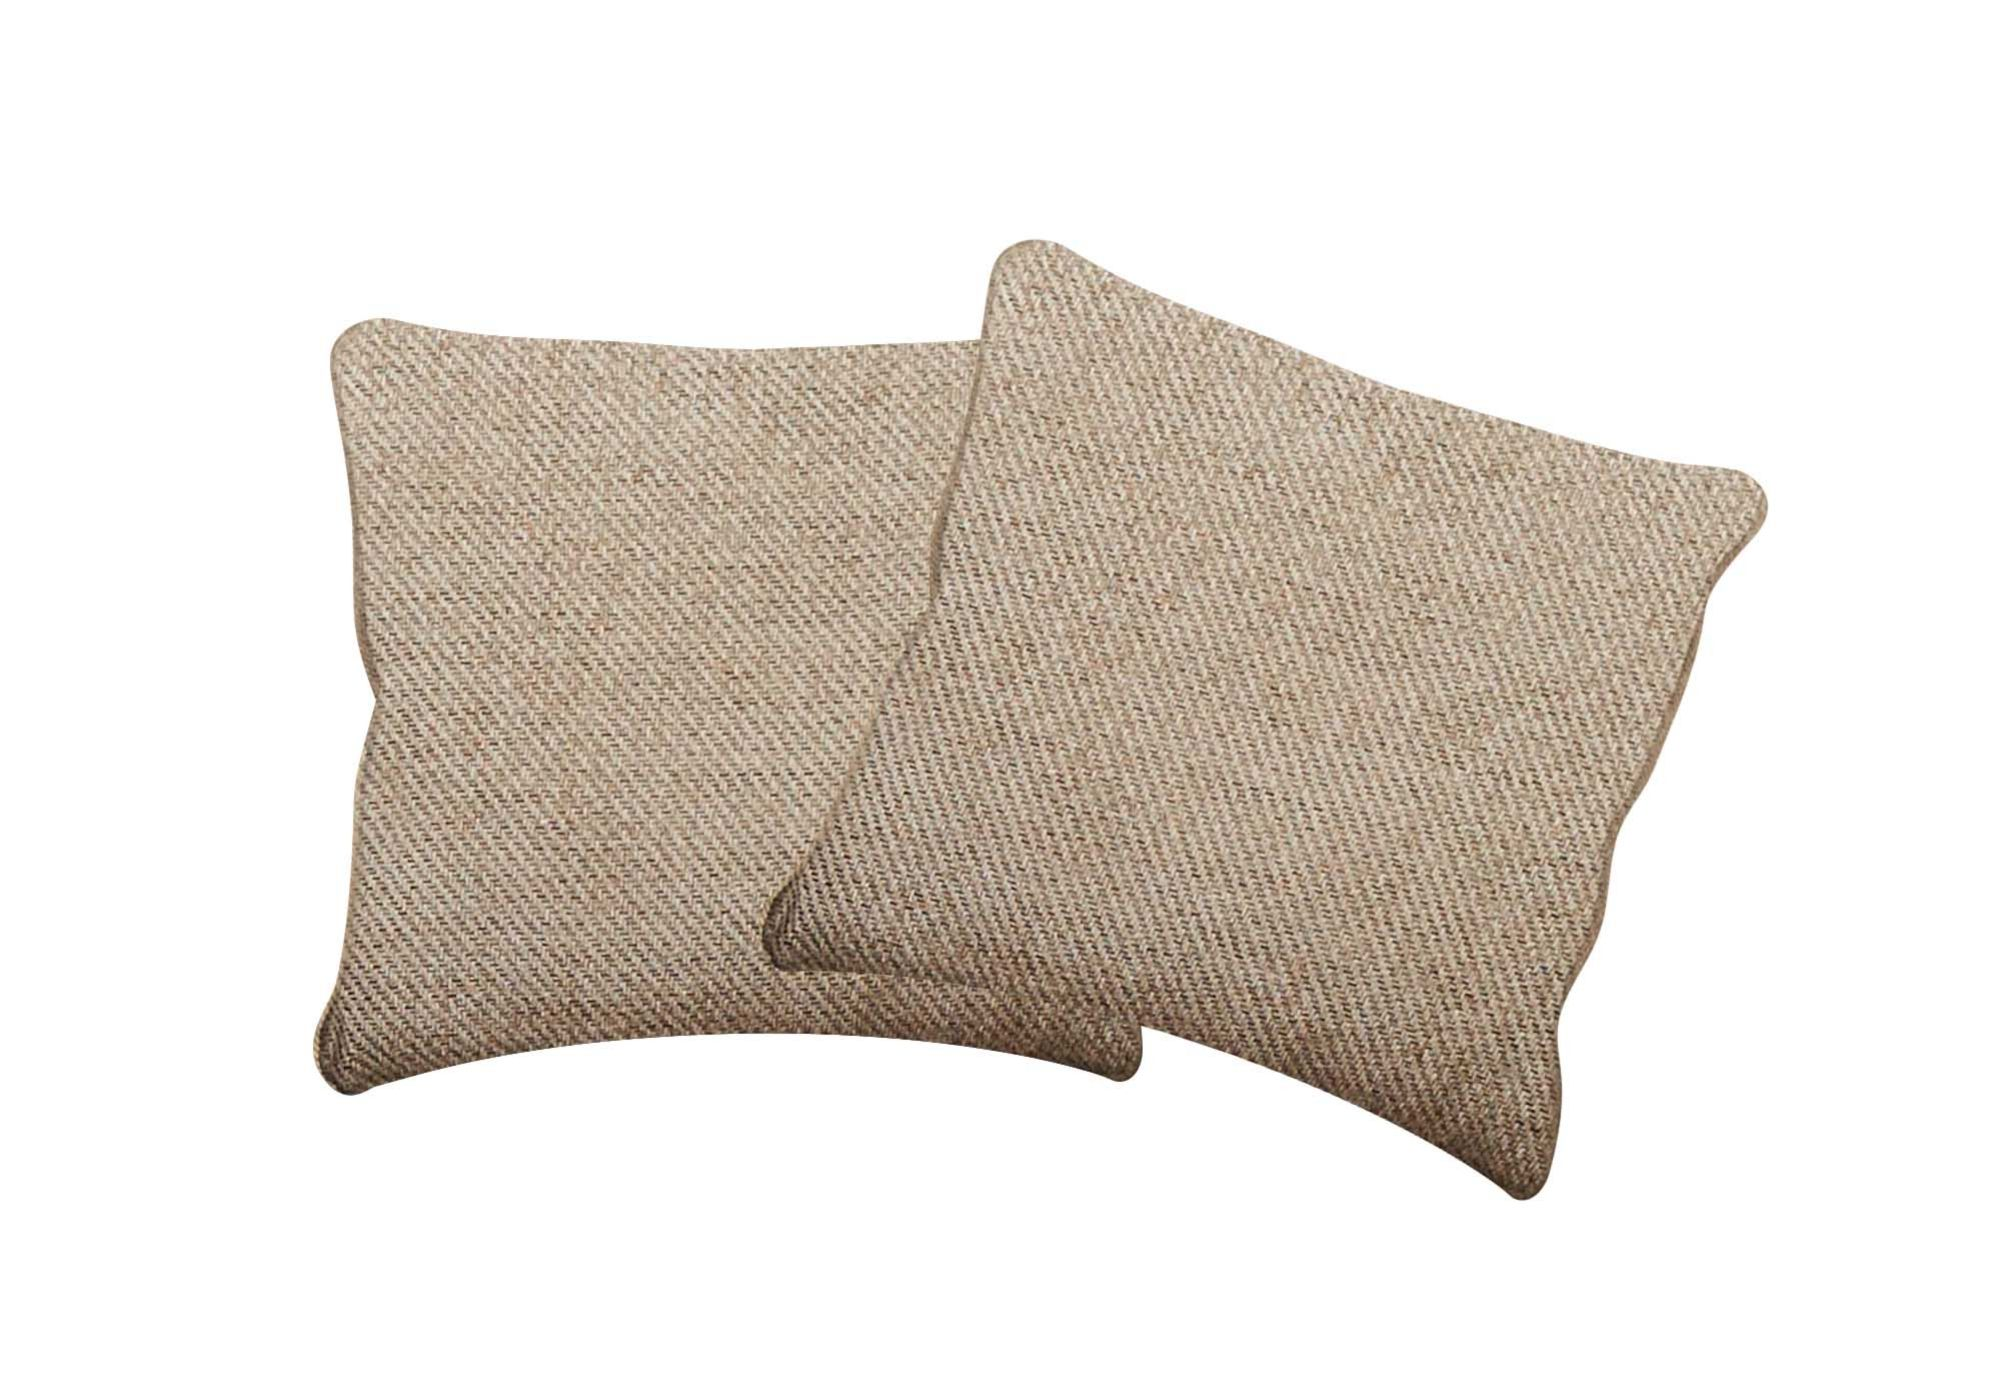 Pair Of Scatter Cushions   Devlin   Living Room Furniture | Sofas And  Armchairs | Furniture